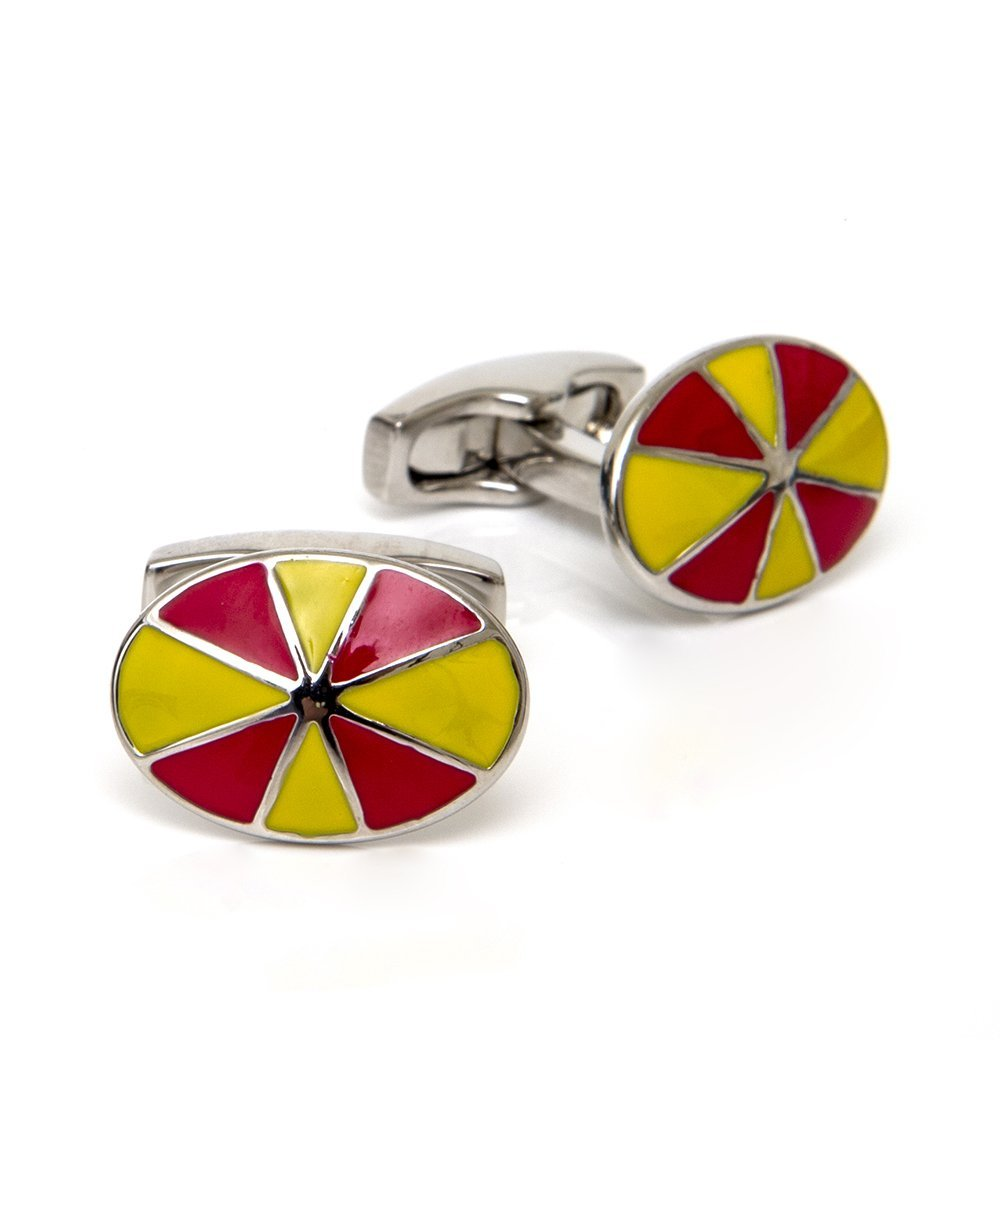 Goodwood Racecourse Jockey Hat Racing Colours Red Yellow Cufflinks